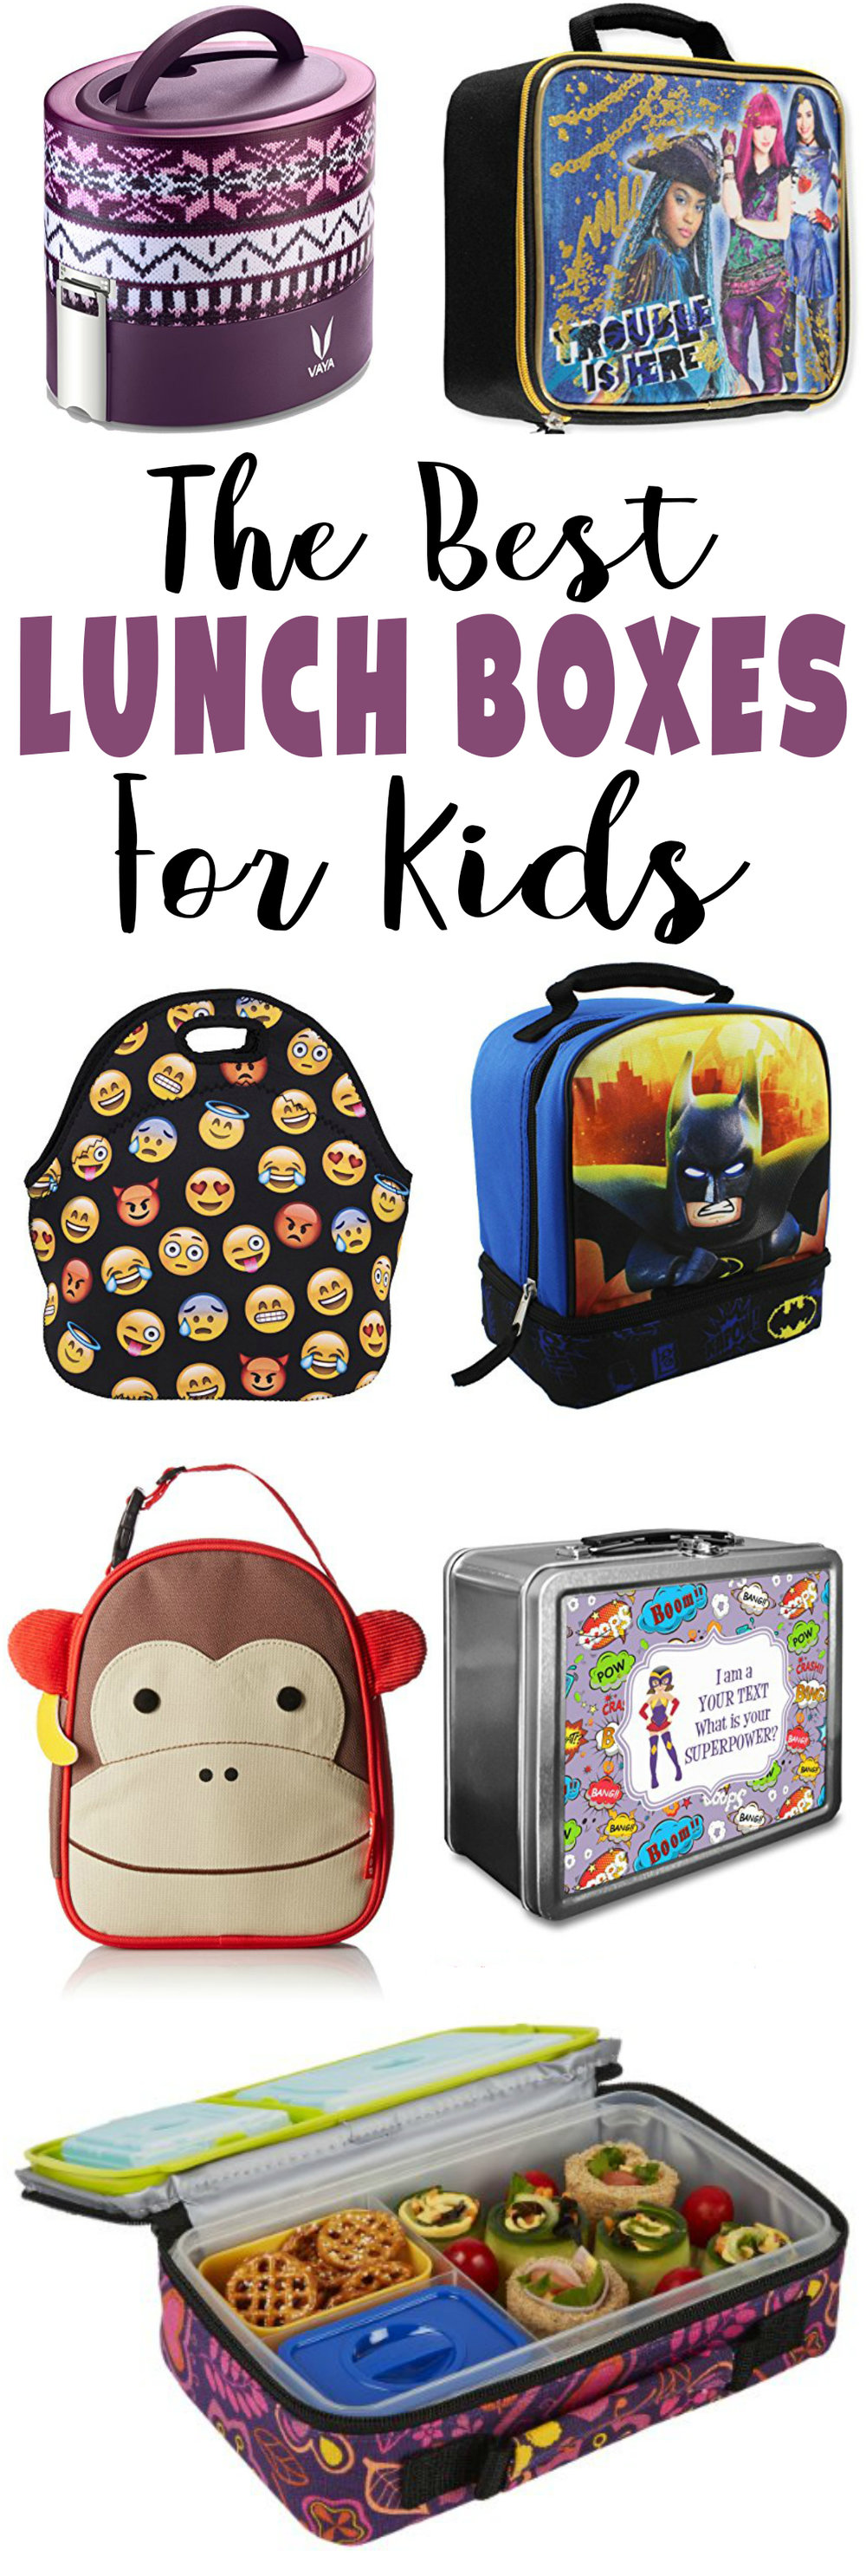 Lunch Boxes For Kids that Keep Food Cold